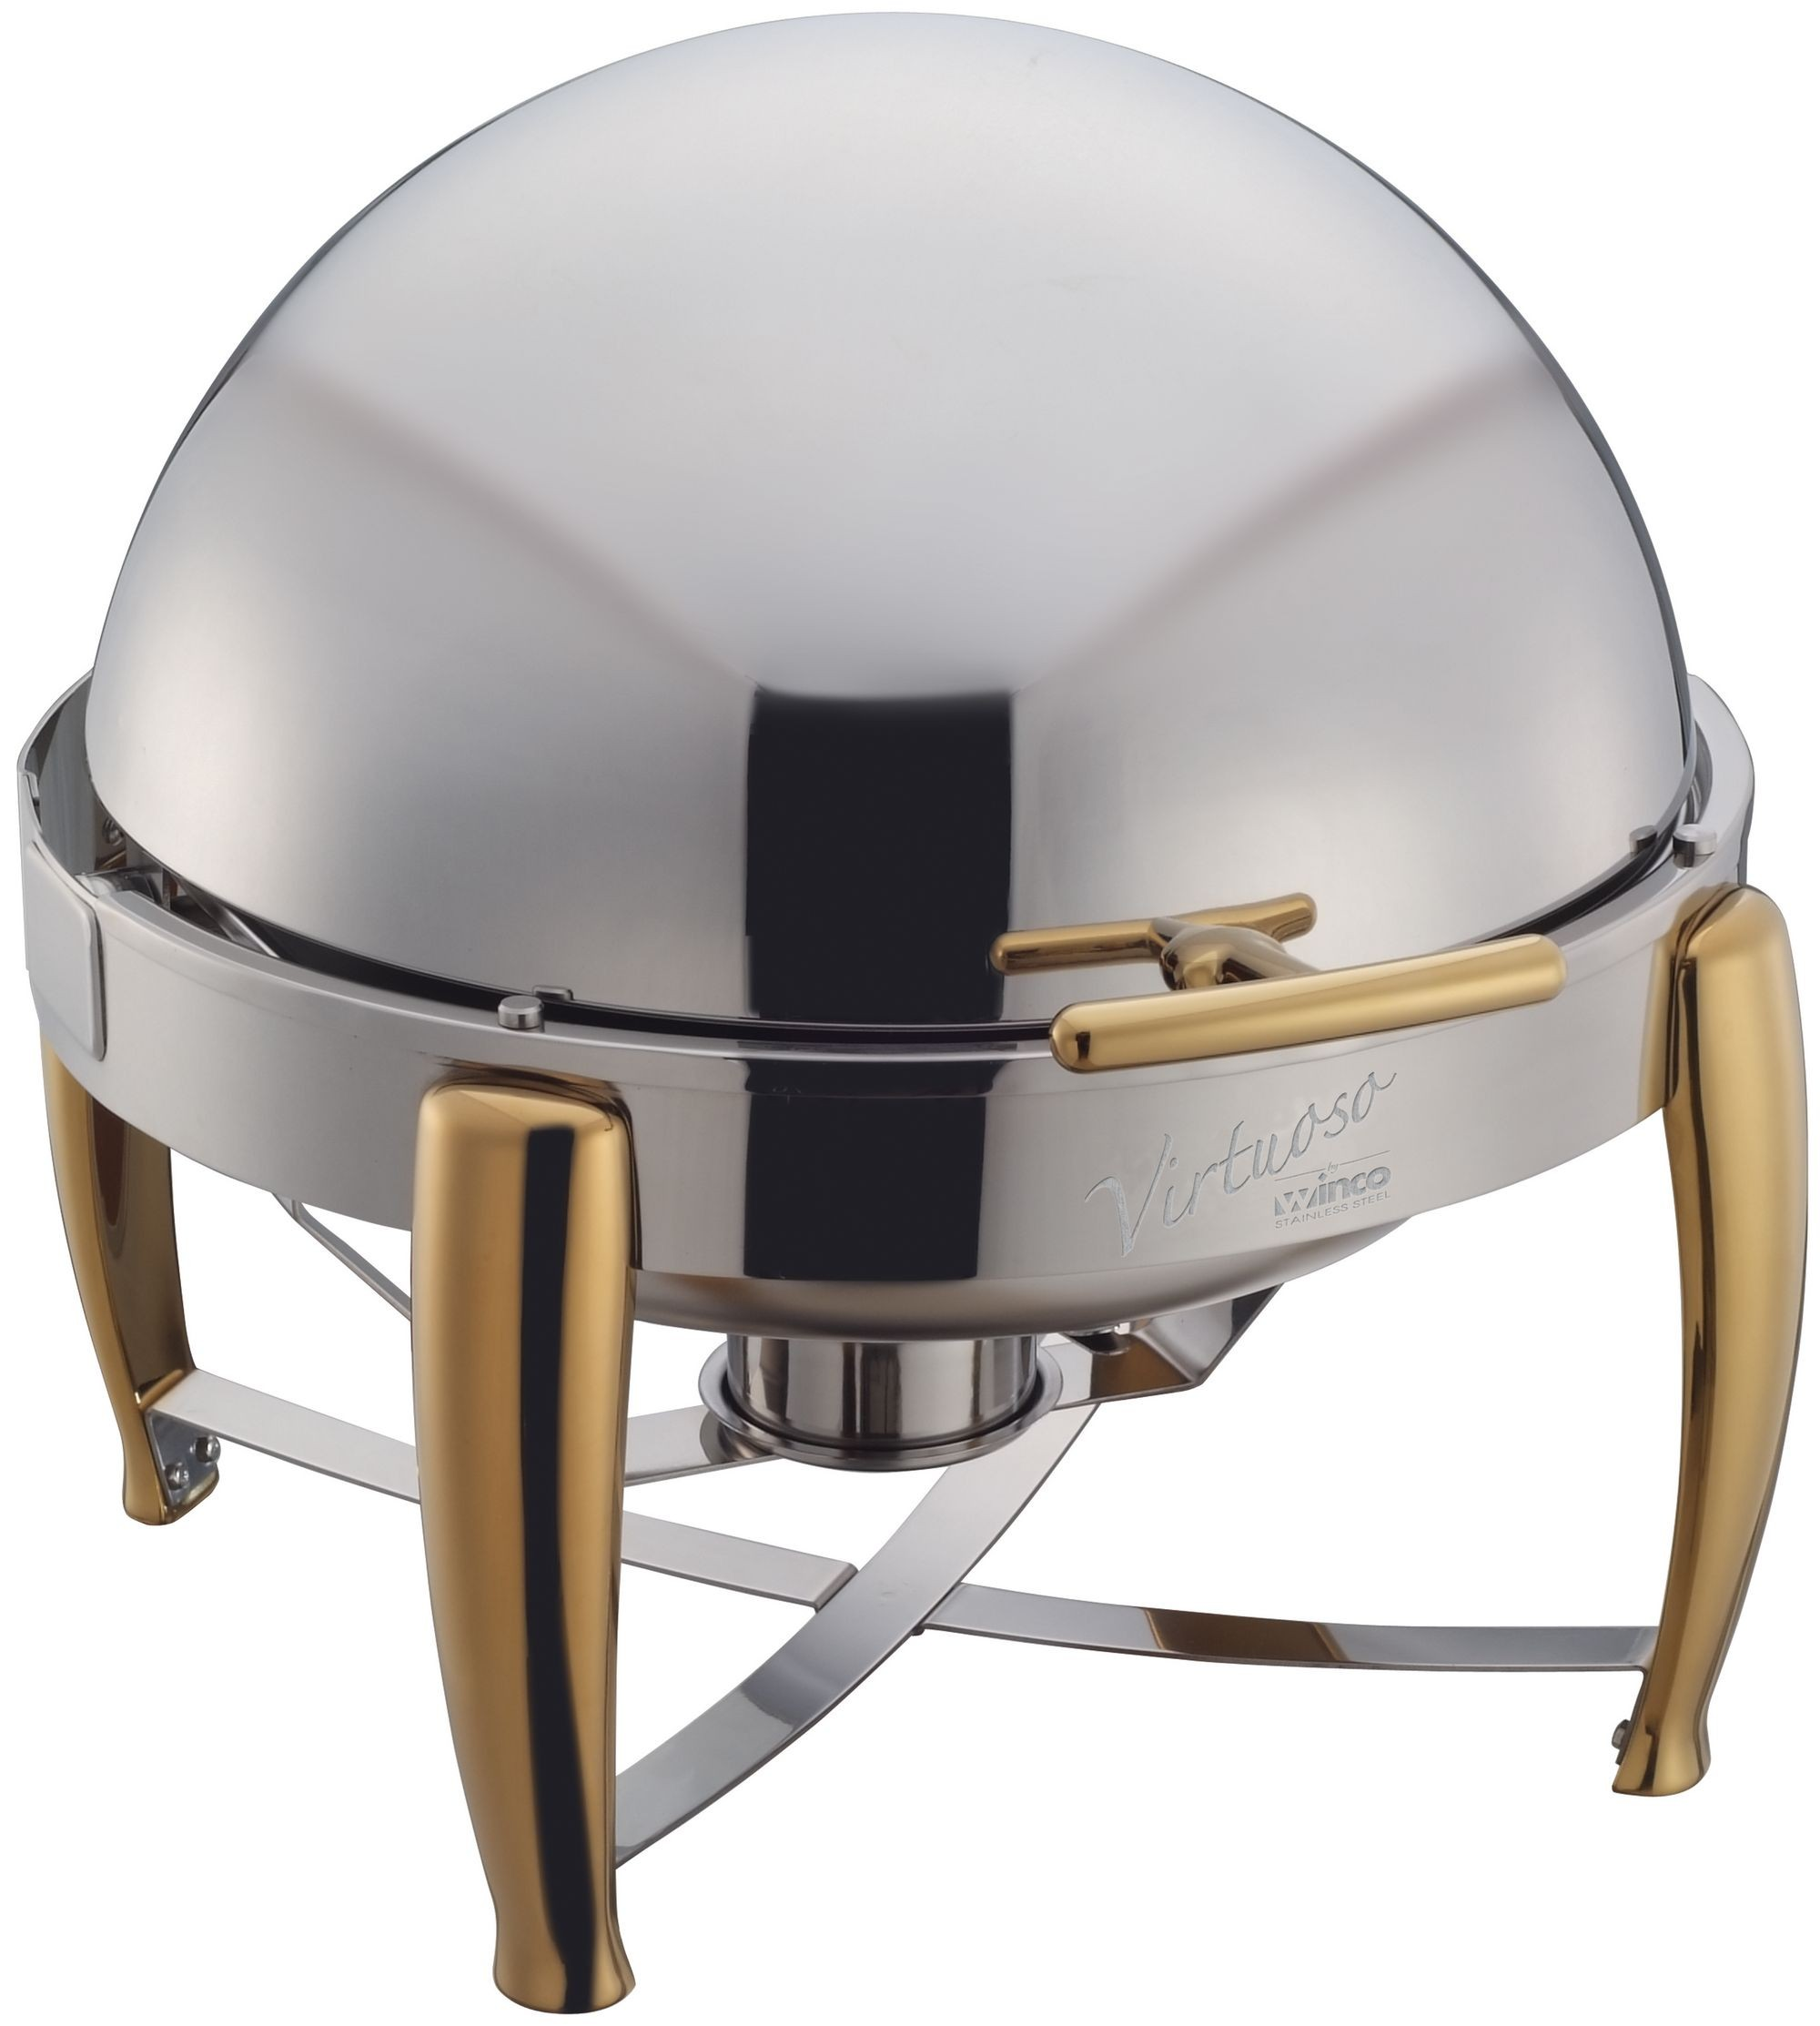 Winco 103A Virtuoso Round Chafer with Gold Accent 6 Qt.